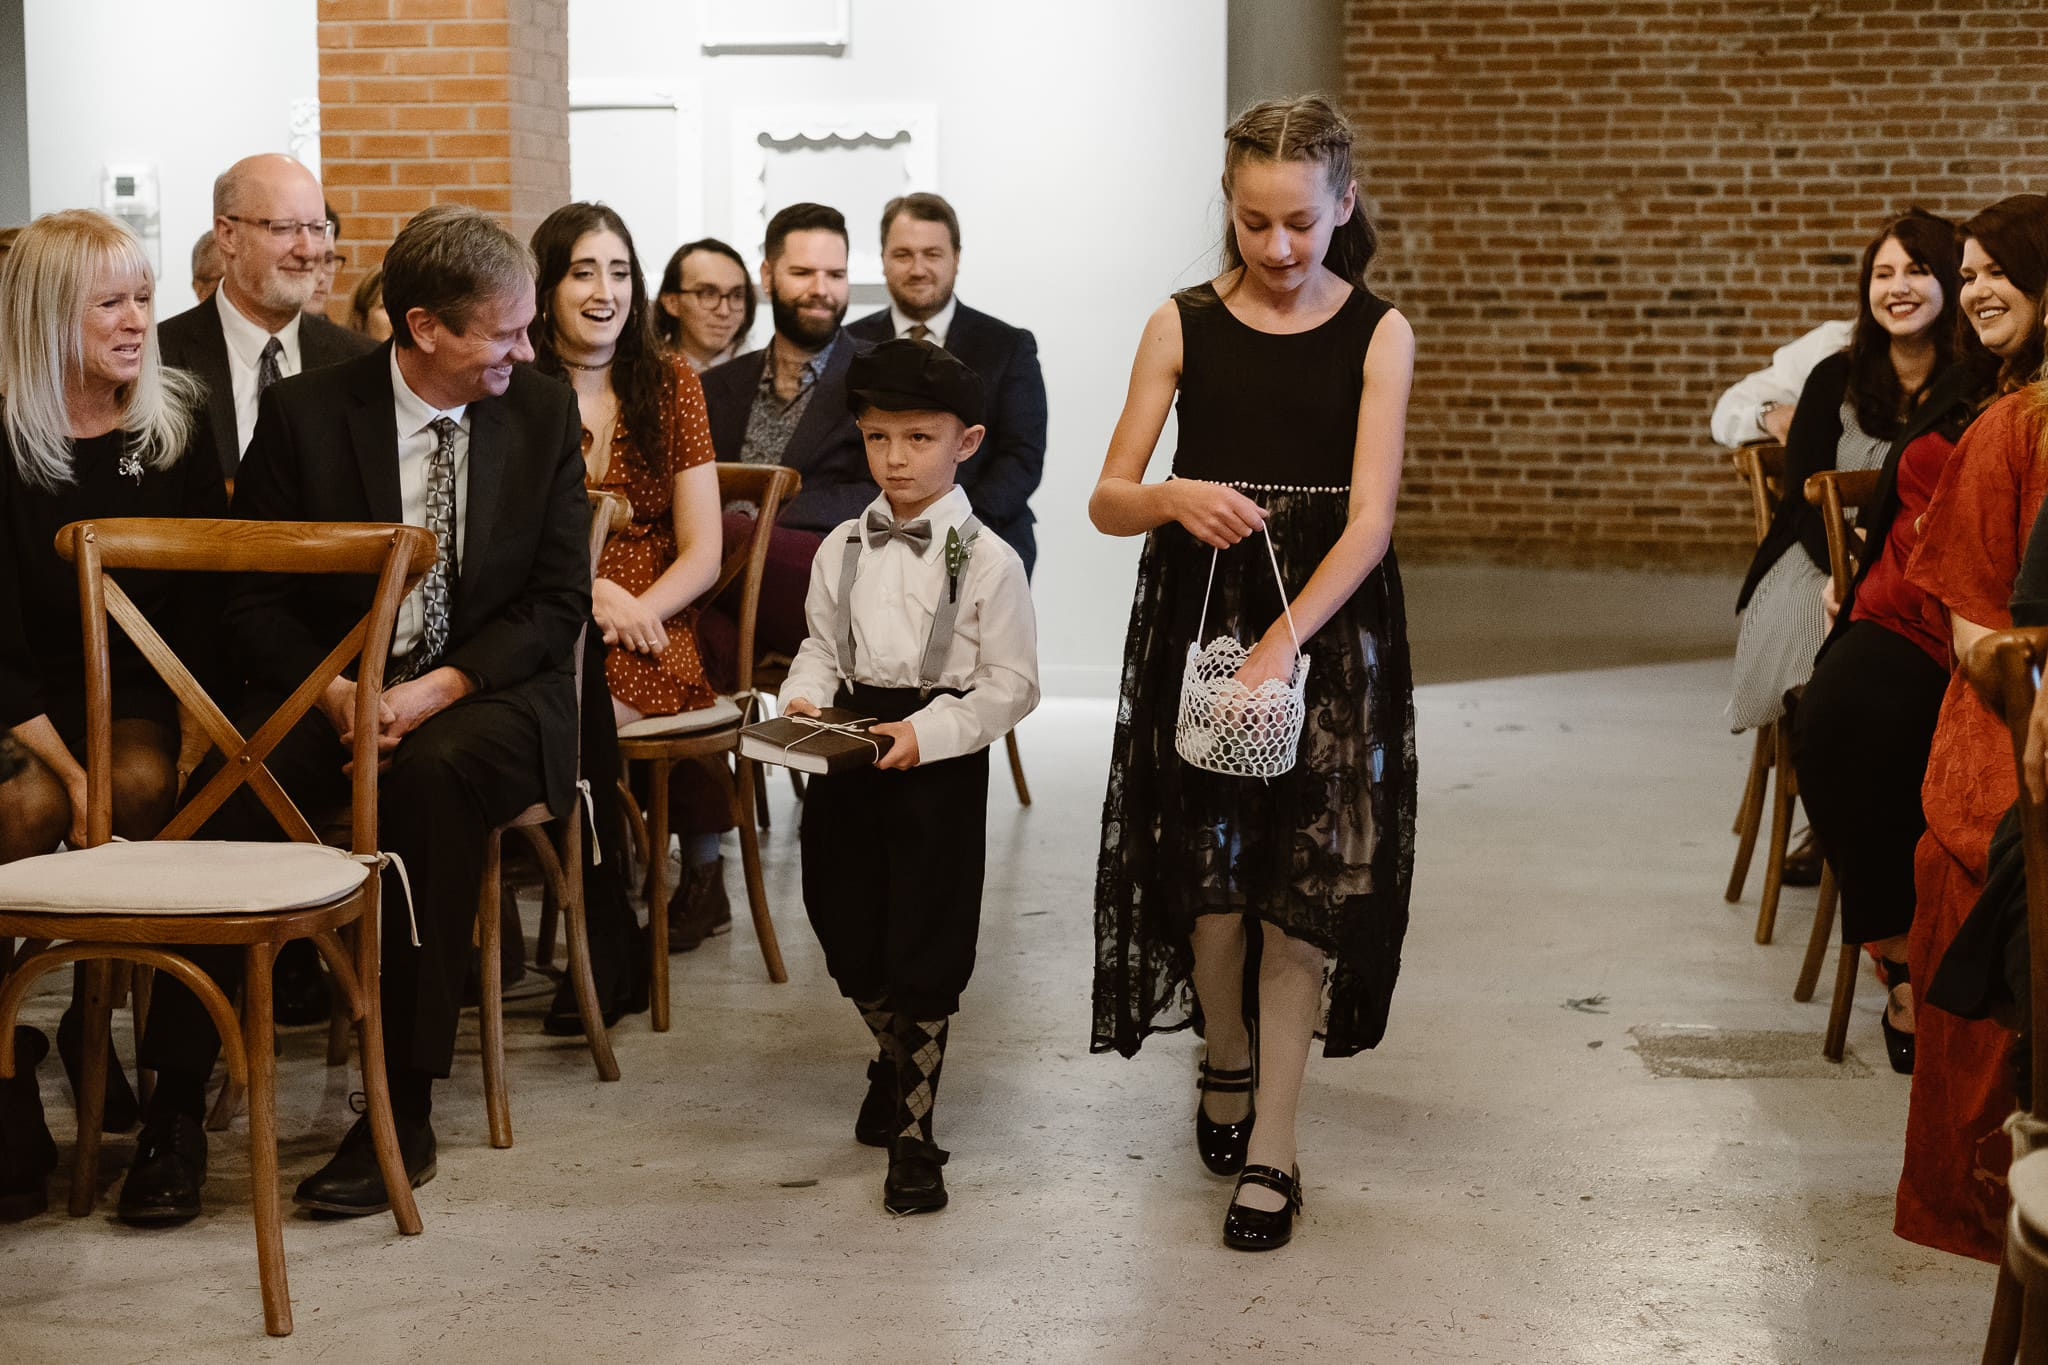 St Vrain Wedding Photographer | Longmont Wedding Photographer | Colorado Winter Wedding Photographer, Colorado industrial chic wedding ceremony, wedding processional, flower girl and ring bearer